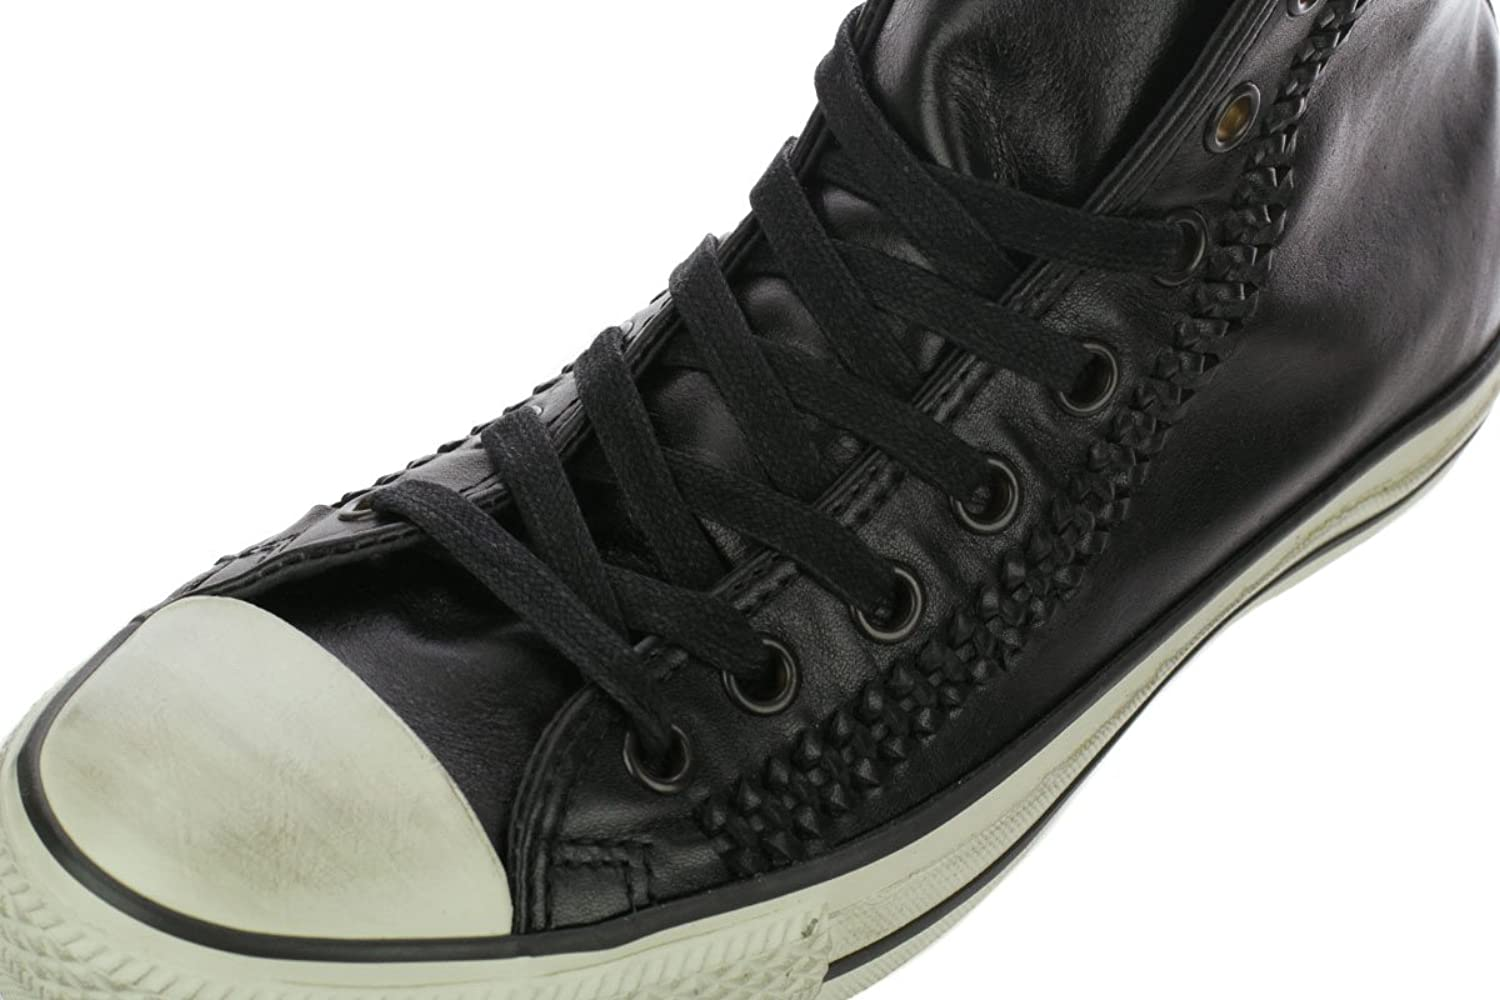 converse chuck taylor double zip low sneakers mens